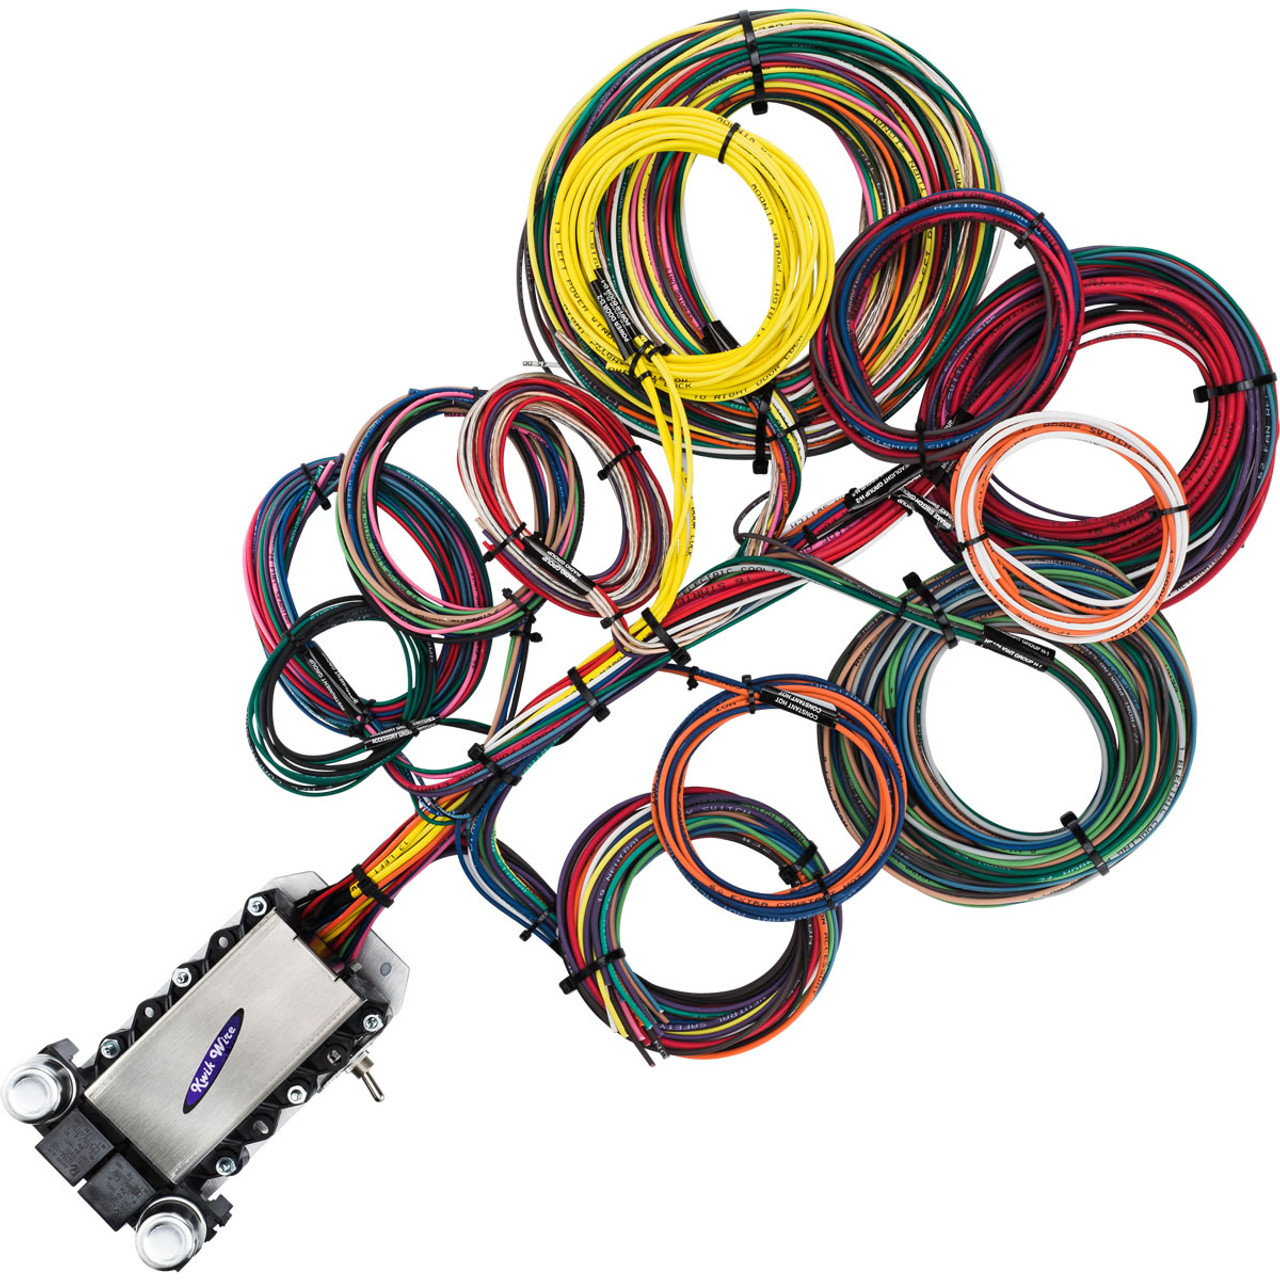 small resolution of 22 circuit ford wire harness kwikwire com electrify your rideford wire harness 3